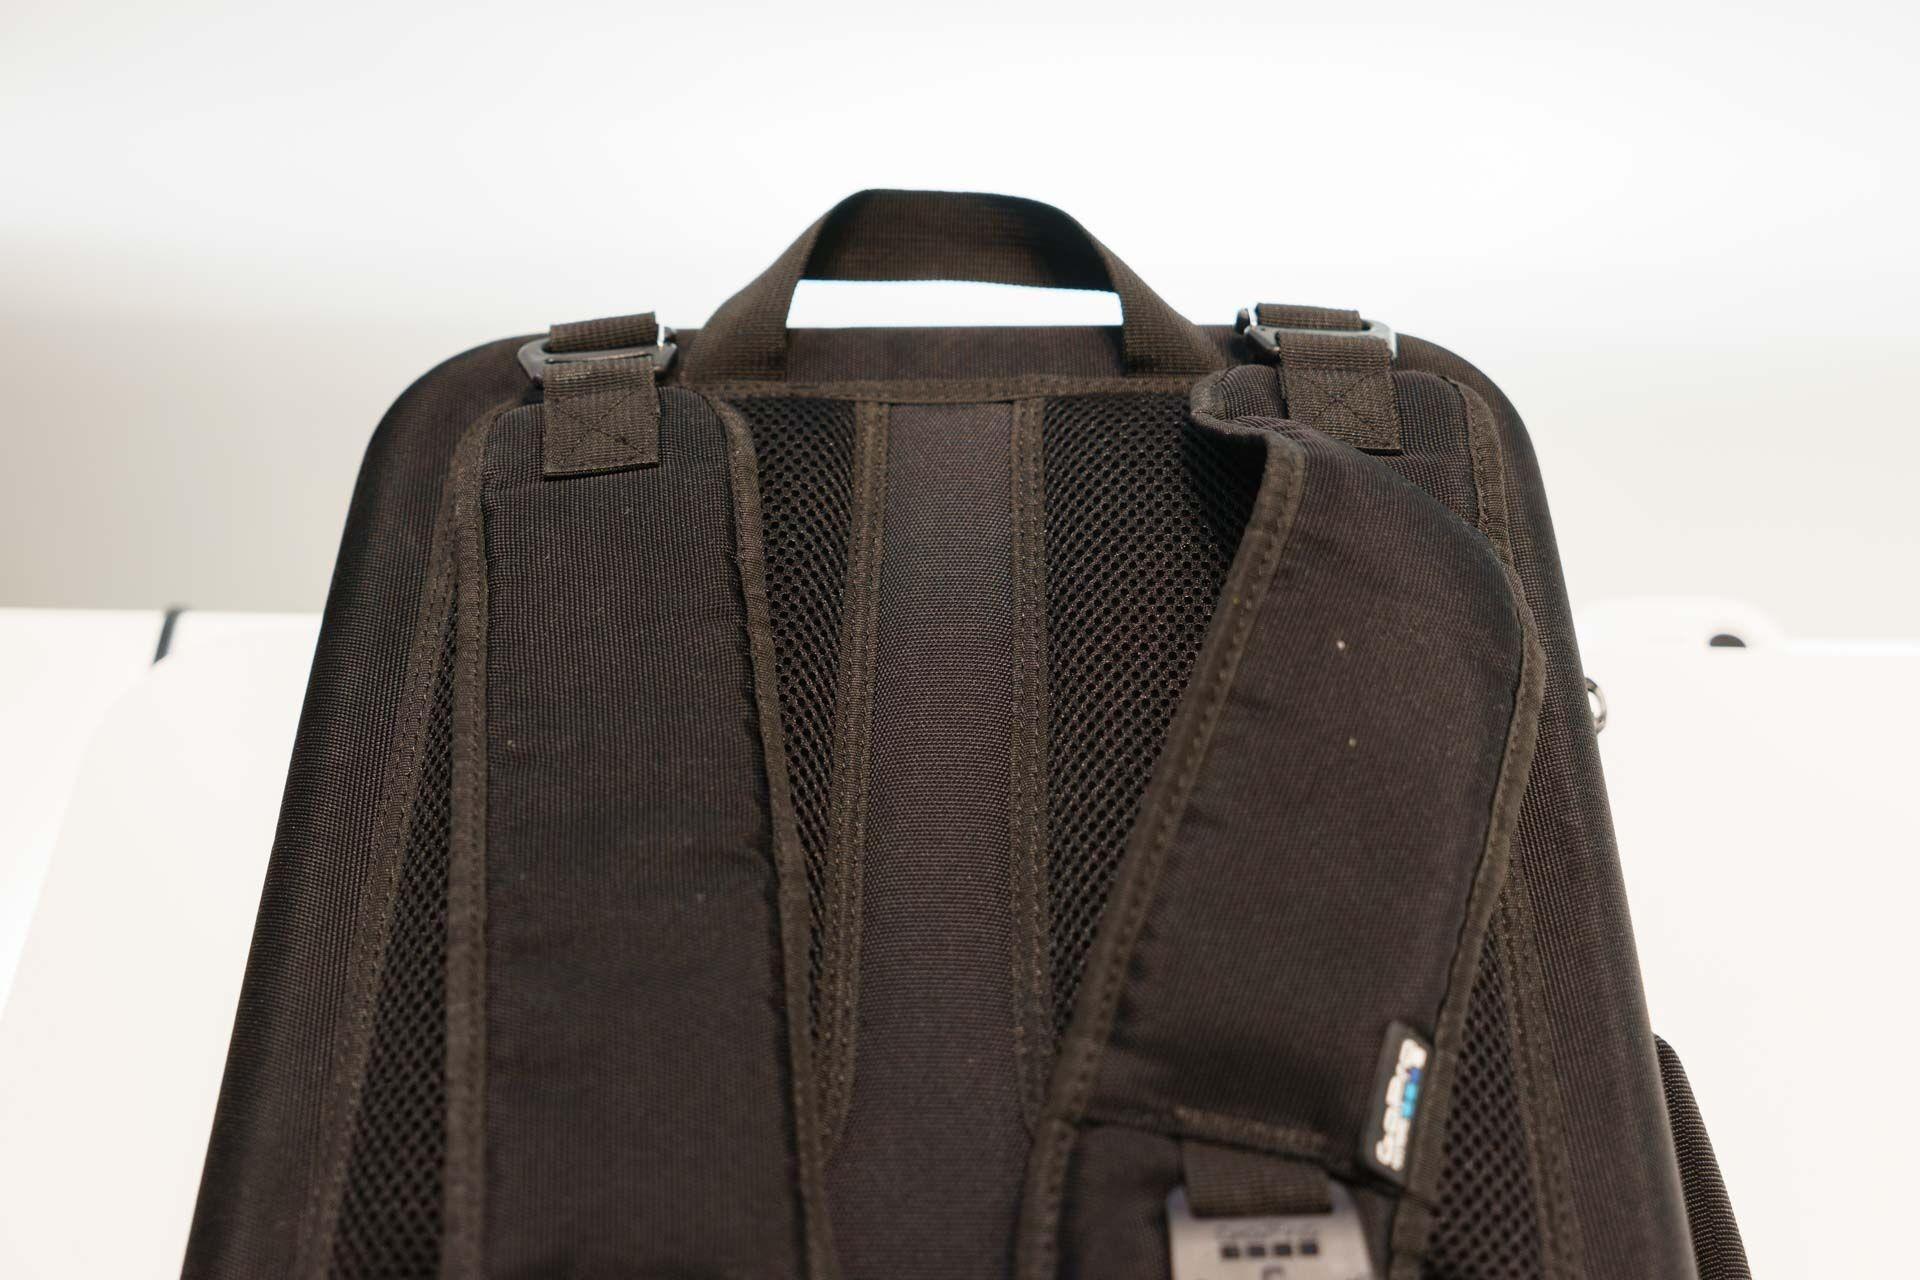 The Karma's arms and feet fold in on themselves, and the entire bundle fits nicely in the included padded case, which can be worn as a backpack.